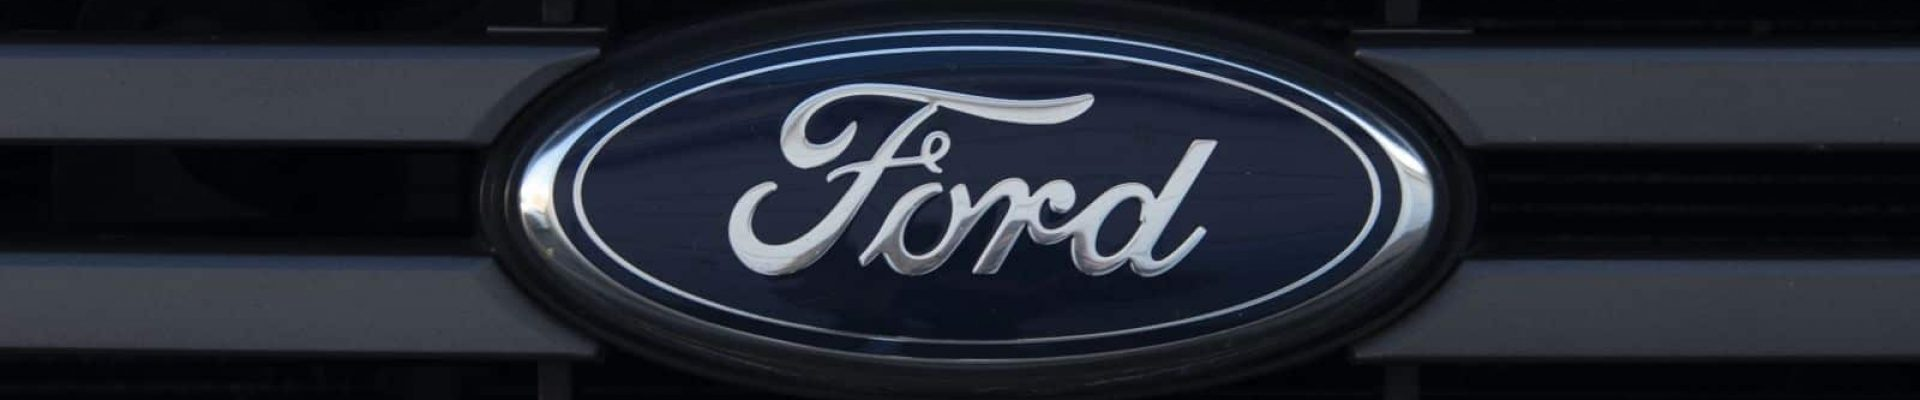 Ford Car Battery Banner image